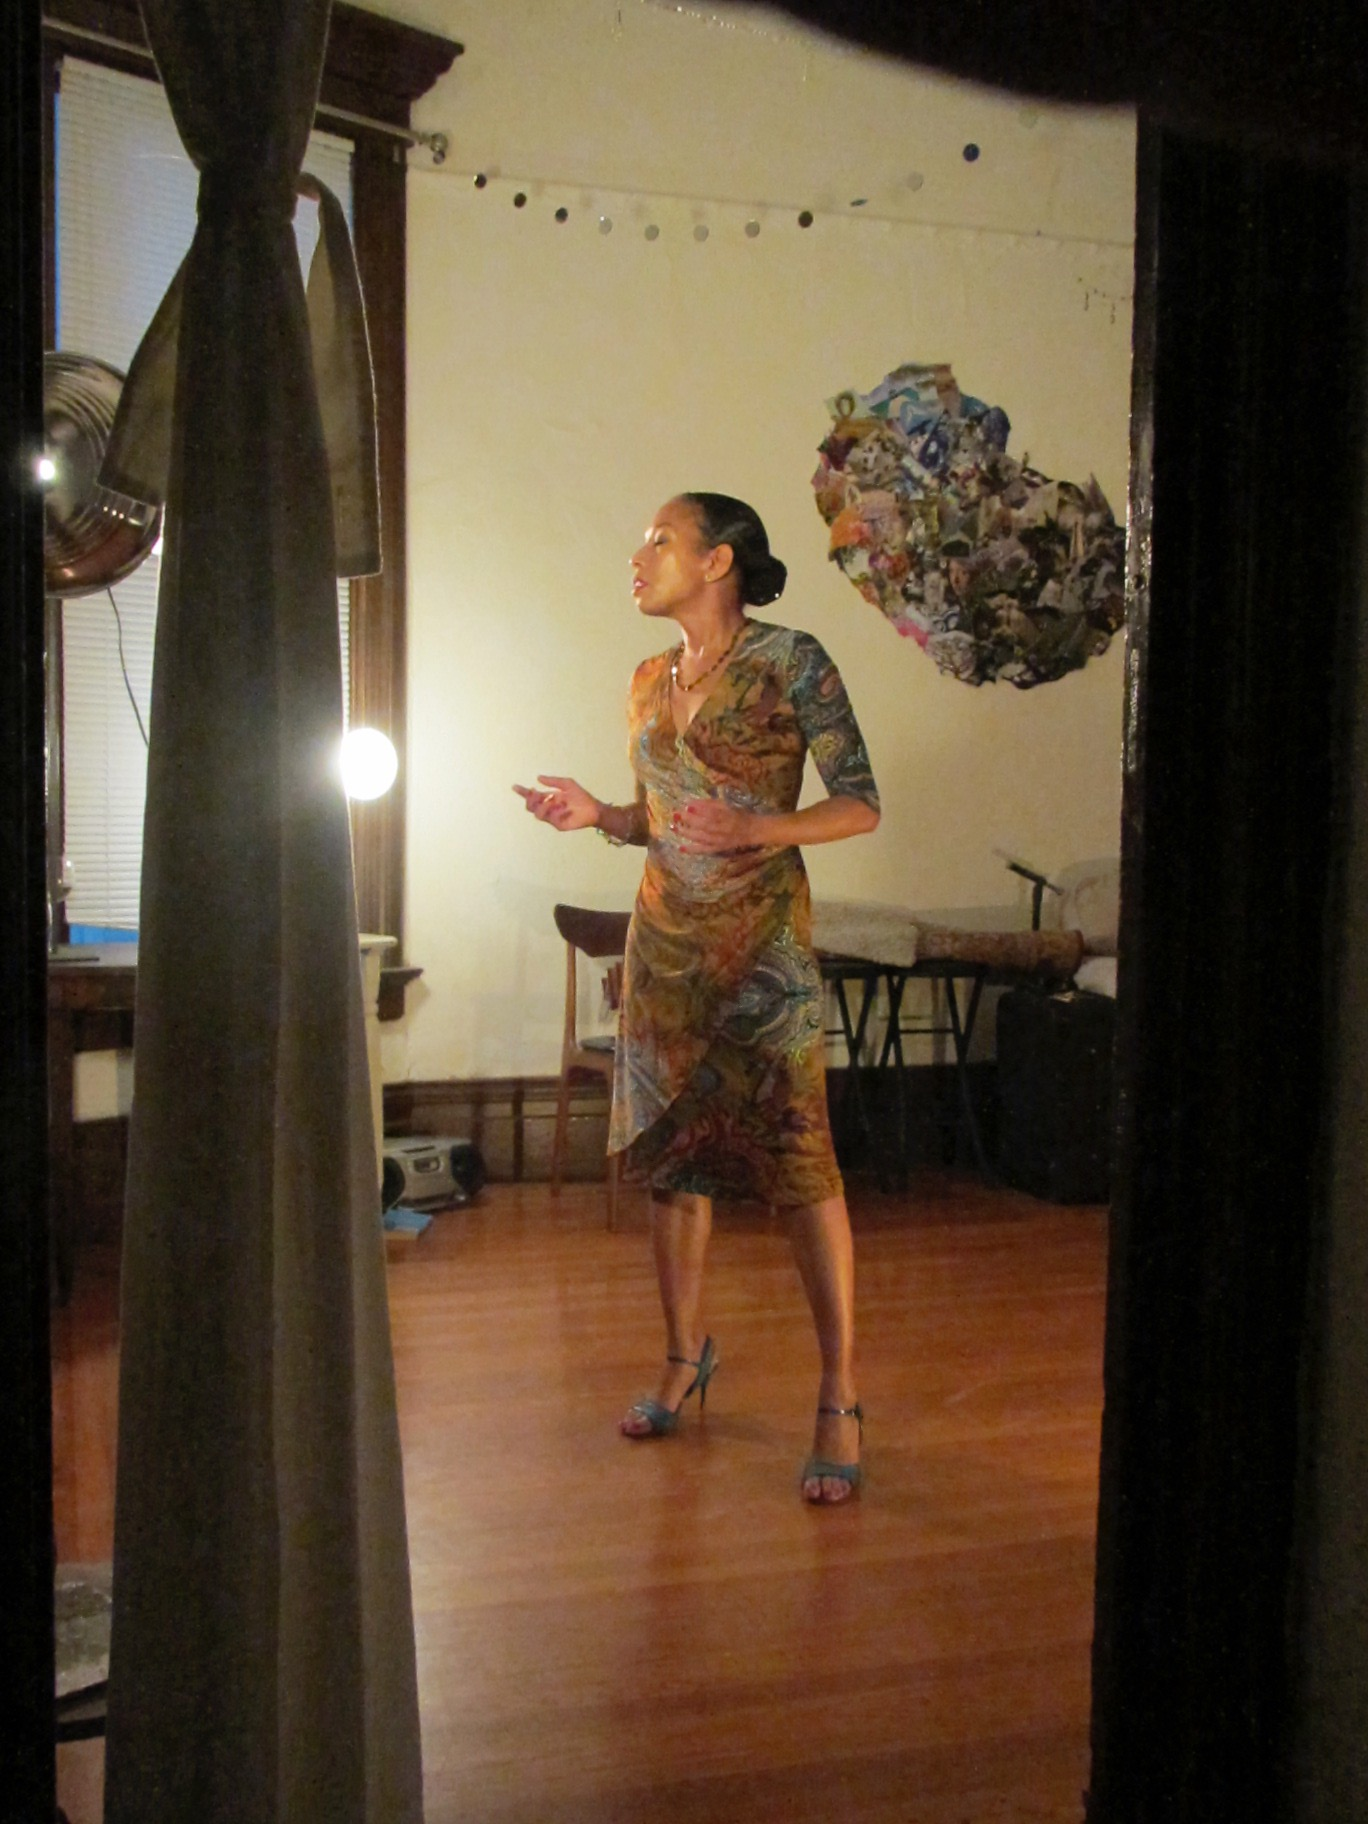 Performer Mia Paschal, a Black Woman with pulled back dark hair, stands in a living room on a wood floor in high heeled tango shoes and a wraparound dress of patterned grey and brown.